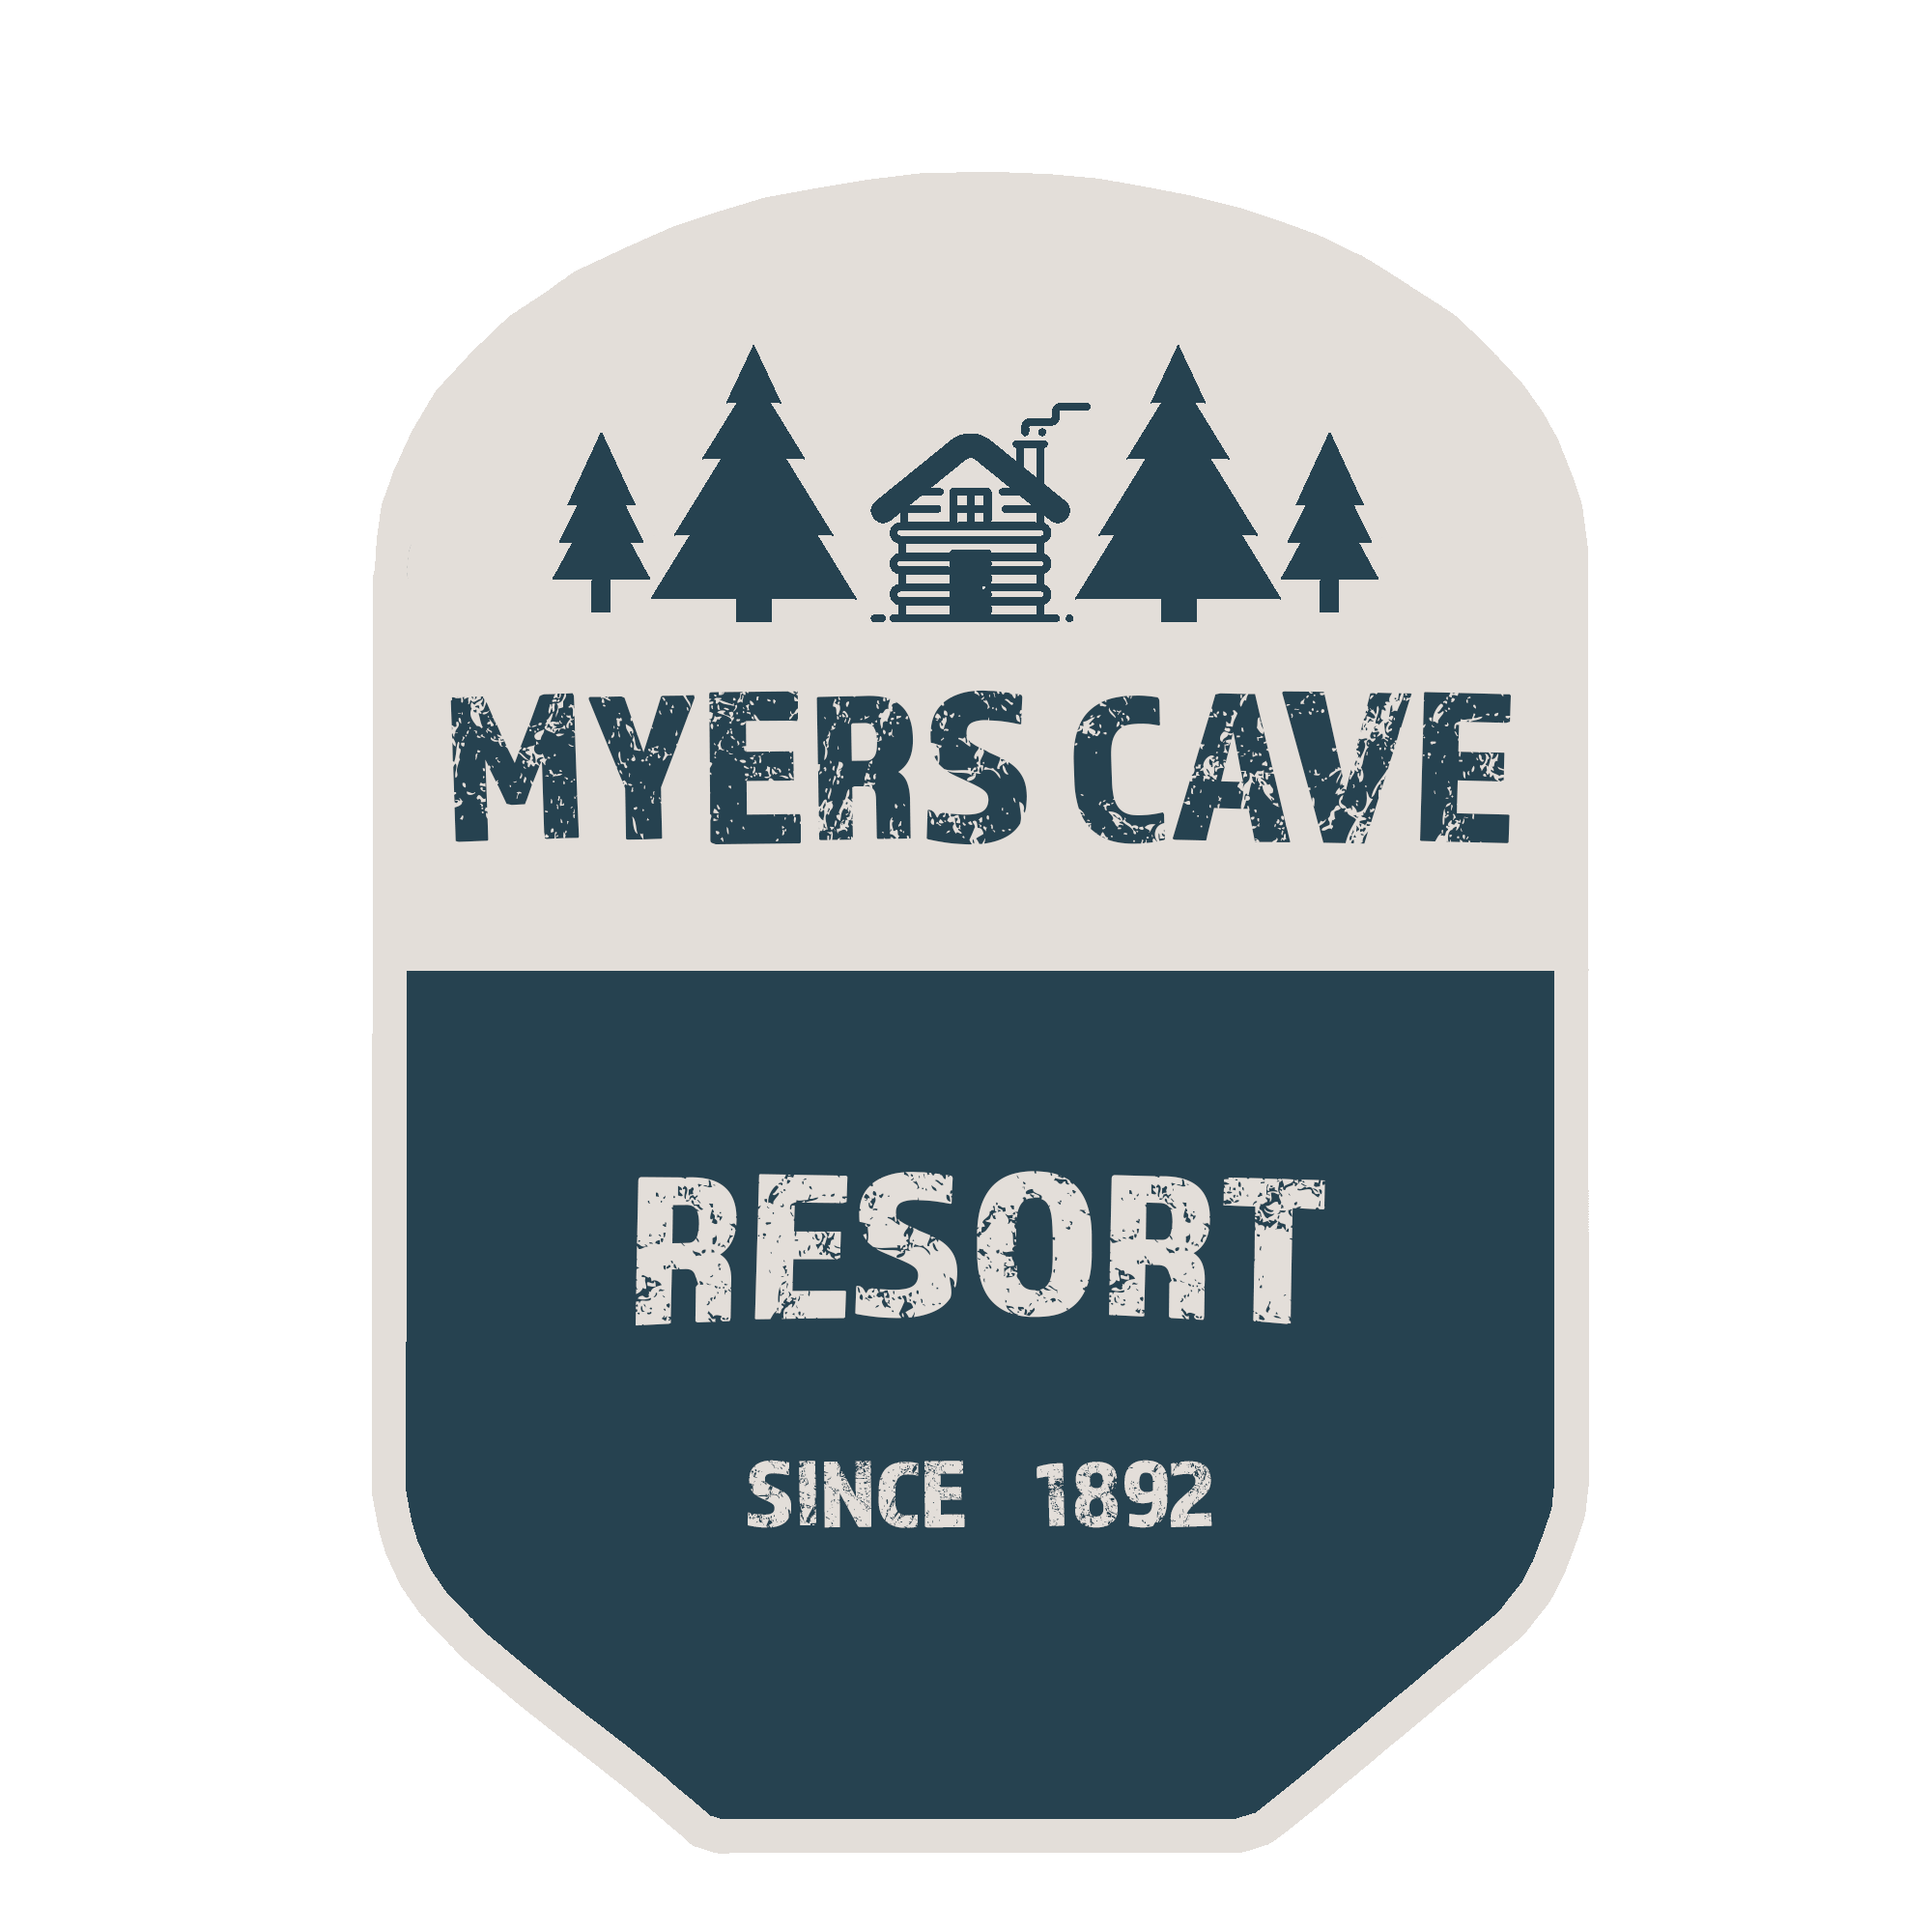 Myers Cave Resort